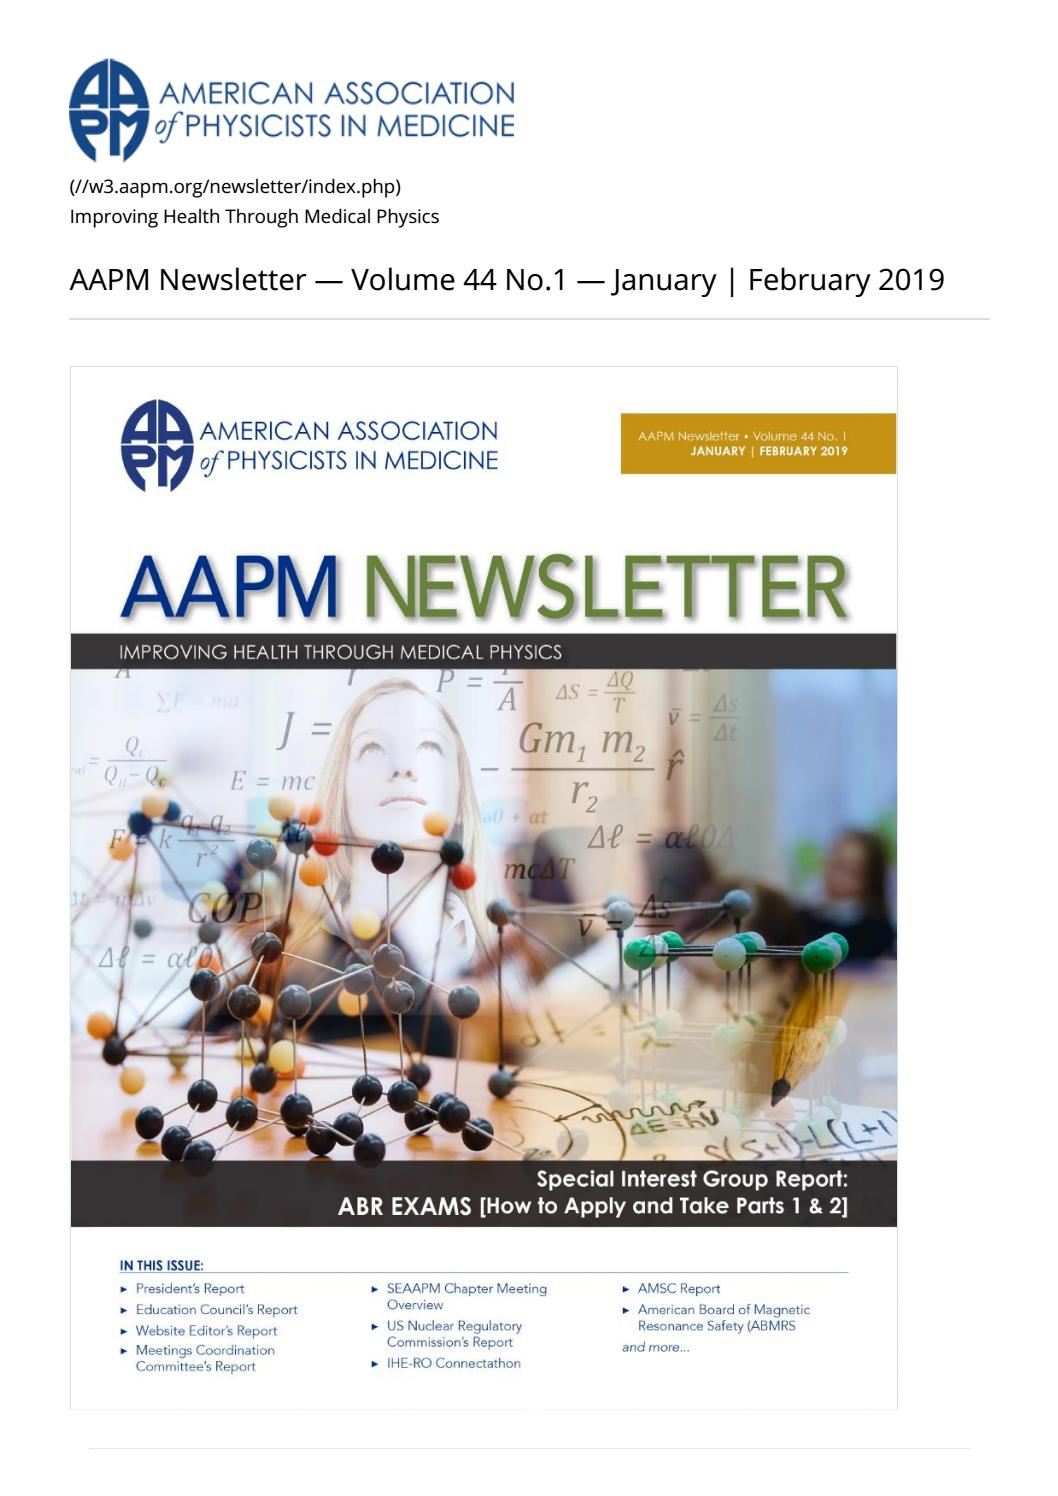 AAPM Newsletter January/February 2019 Vol  44 No  1 by